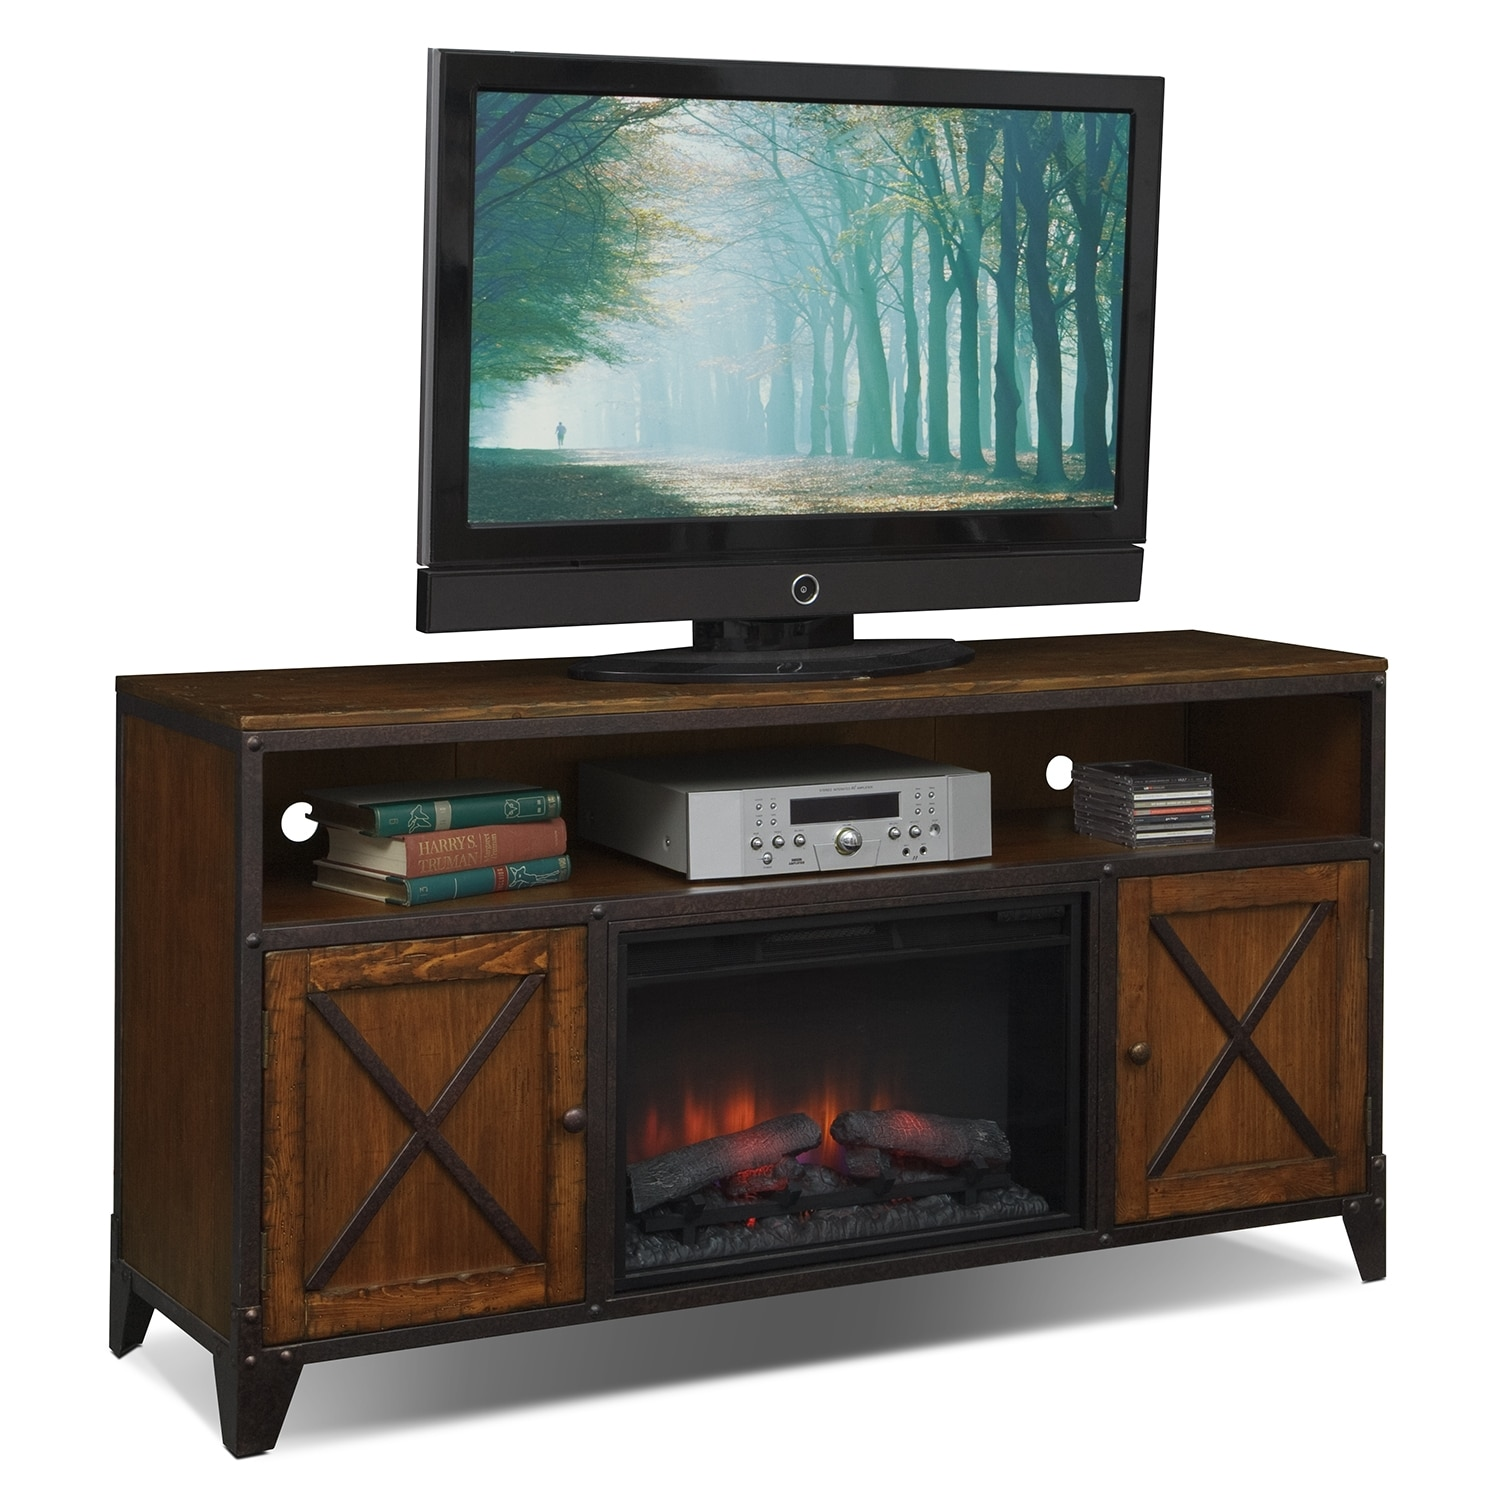 Entertainment Furniture - Shortline Fireplace TV Stand with Traditional Insert - Distressed Pine